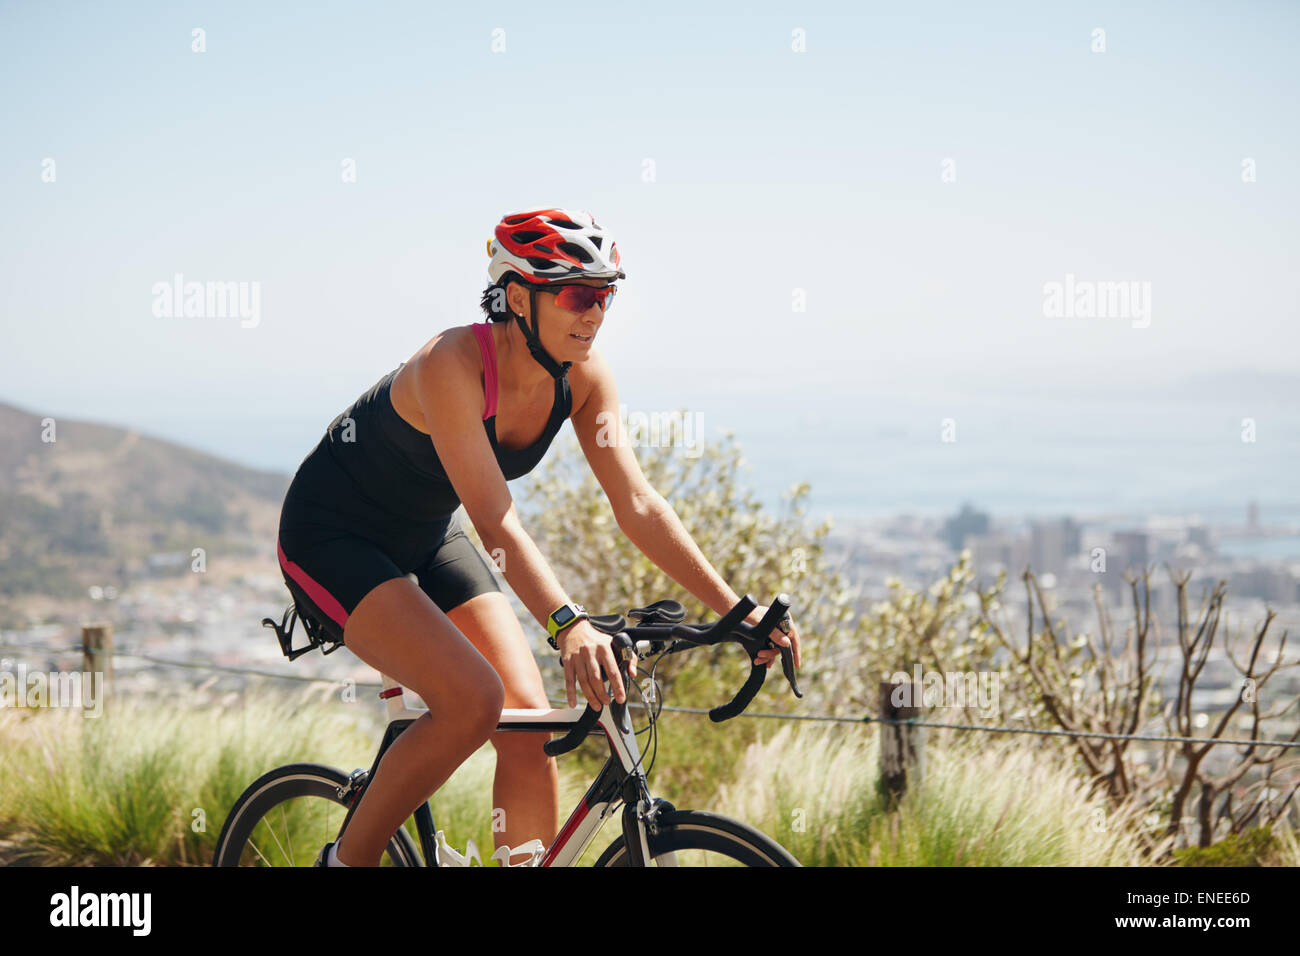 Outdoor shot of a female cyclist riding racing bicycle. Woman cycling on countryside road. Training for competition. - Stock Image